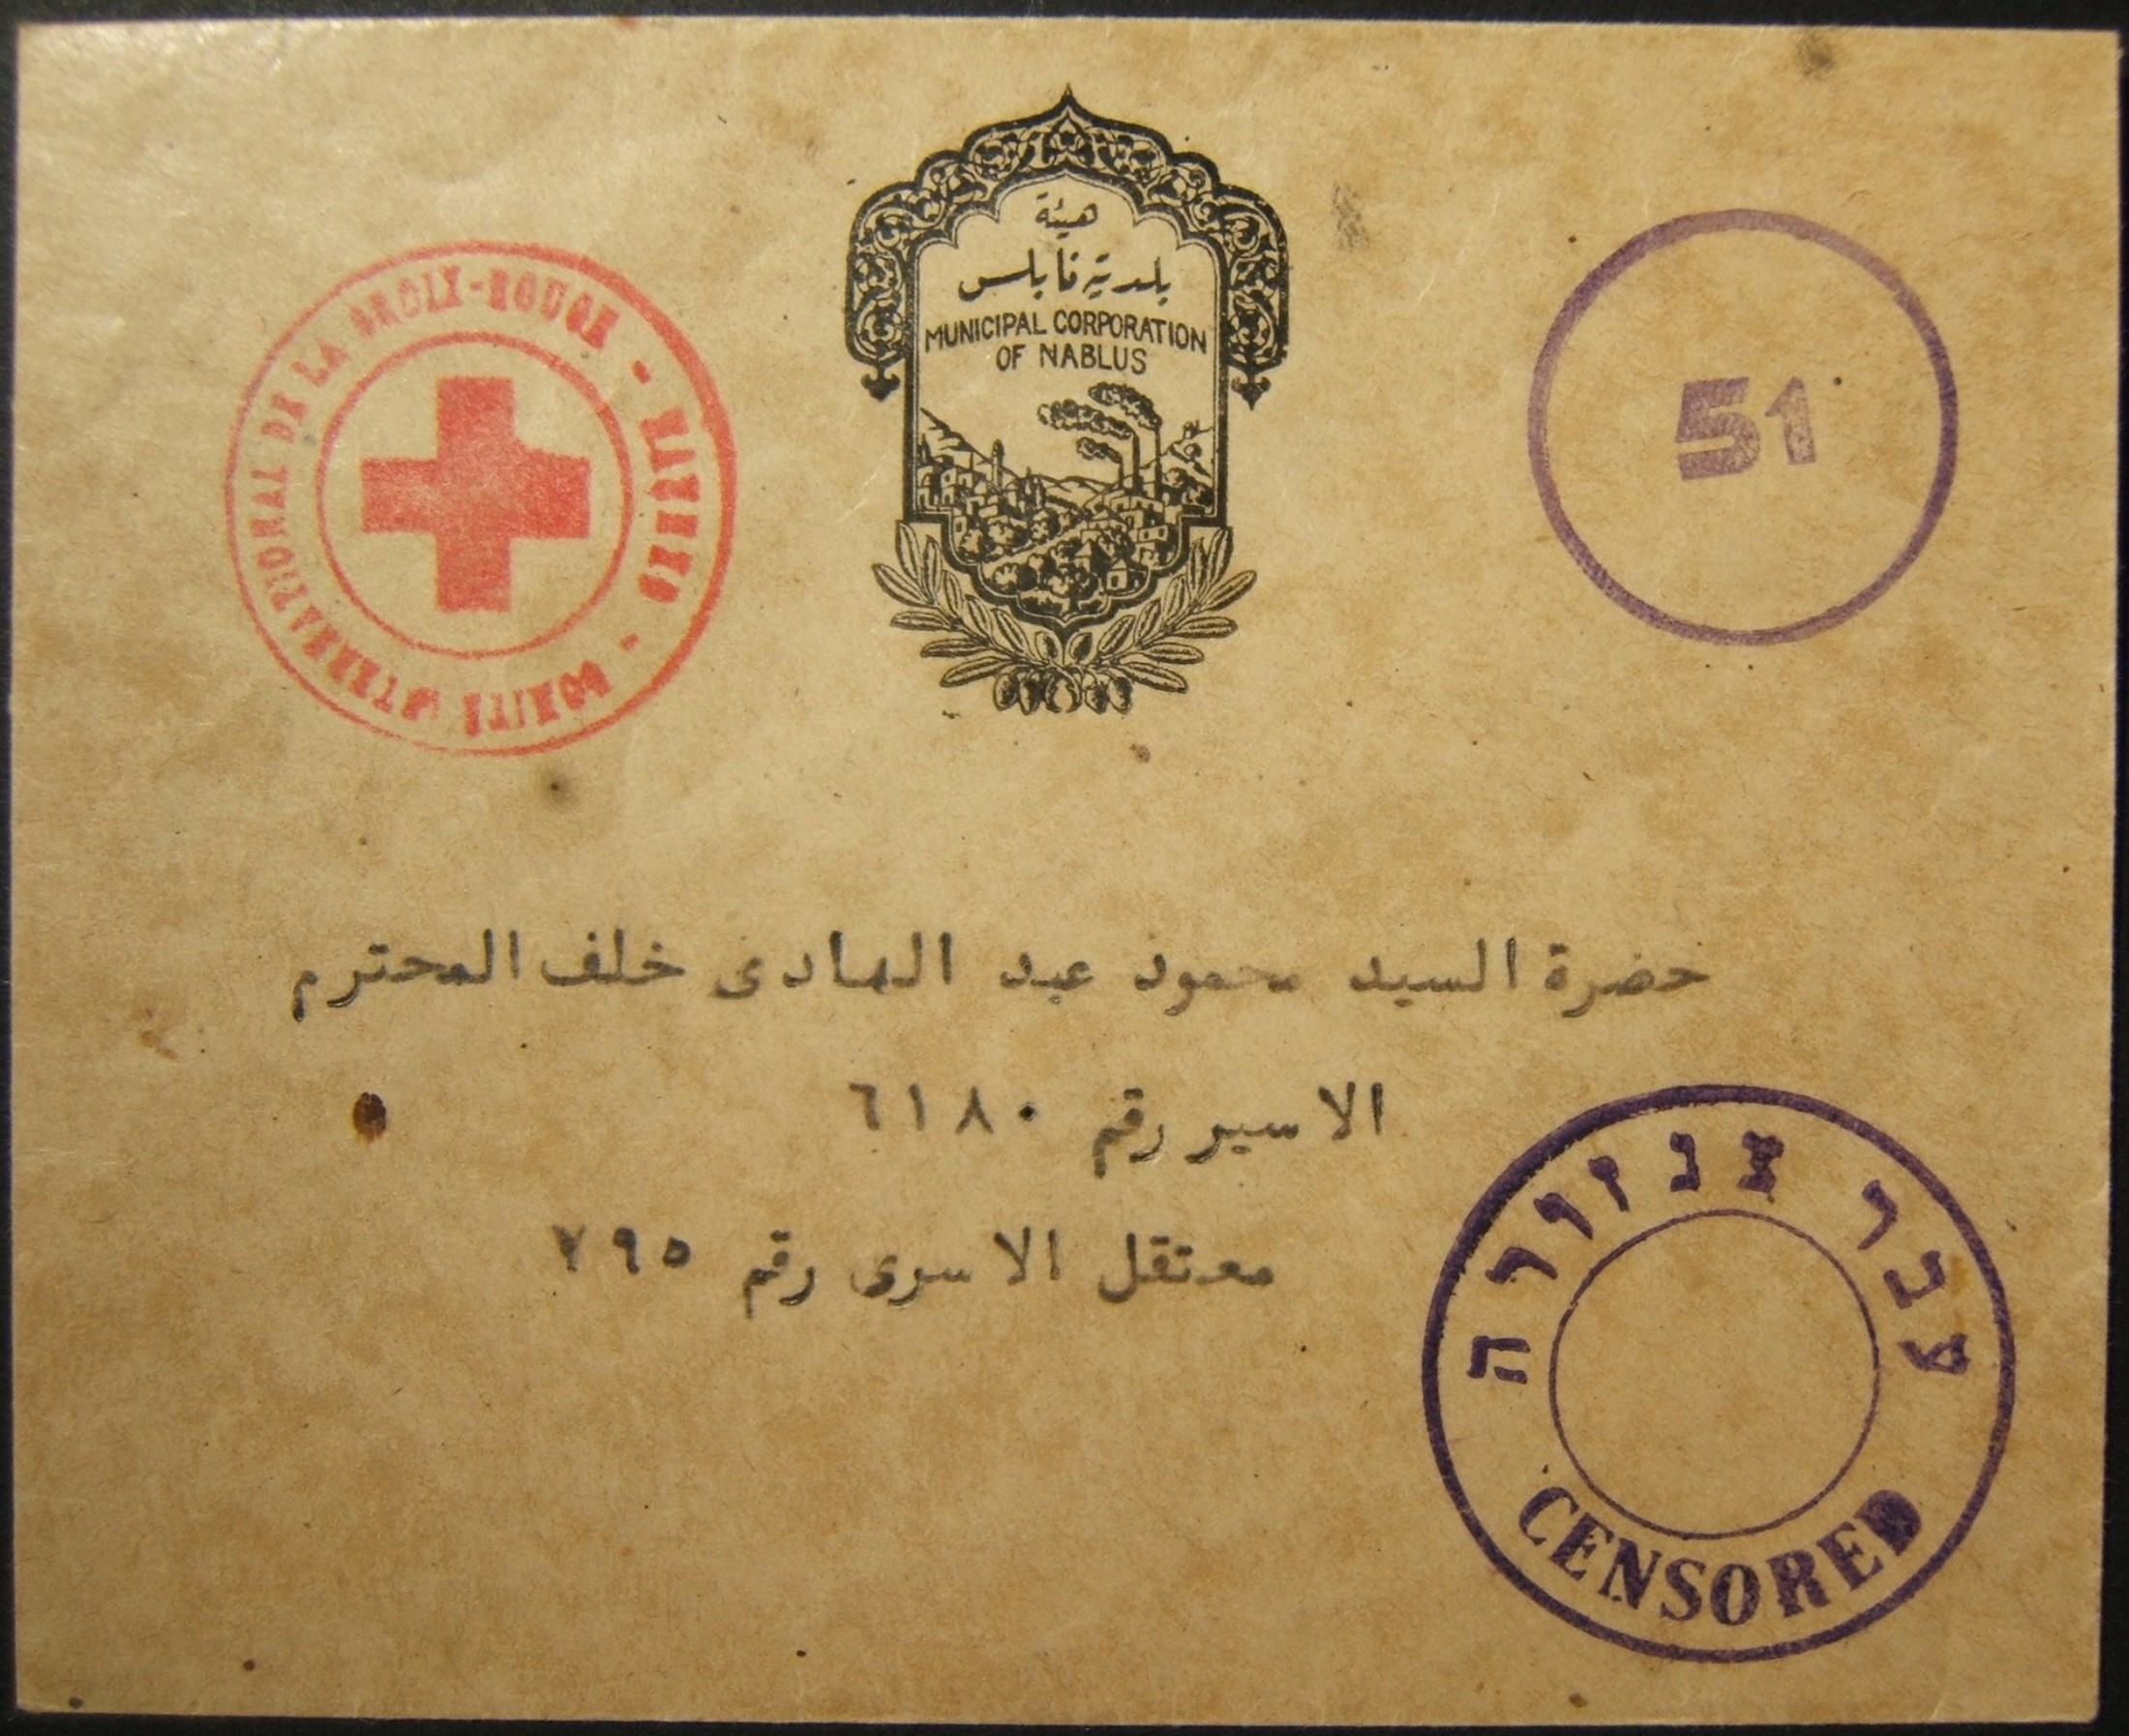 1948-49 War twice censored mail to Arab POW from NABLUS to Israel via the Red Cross